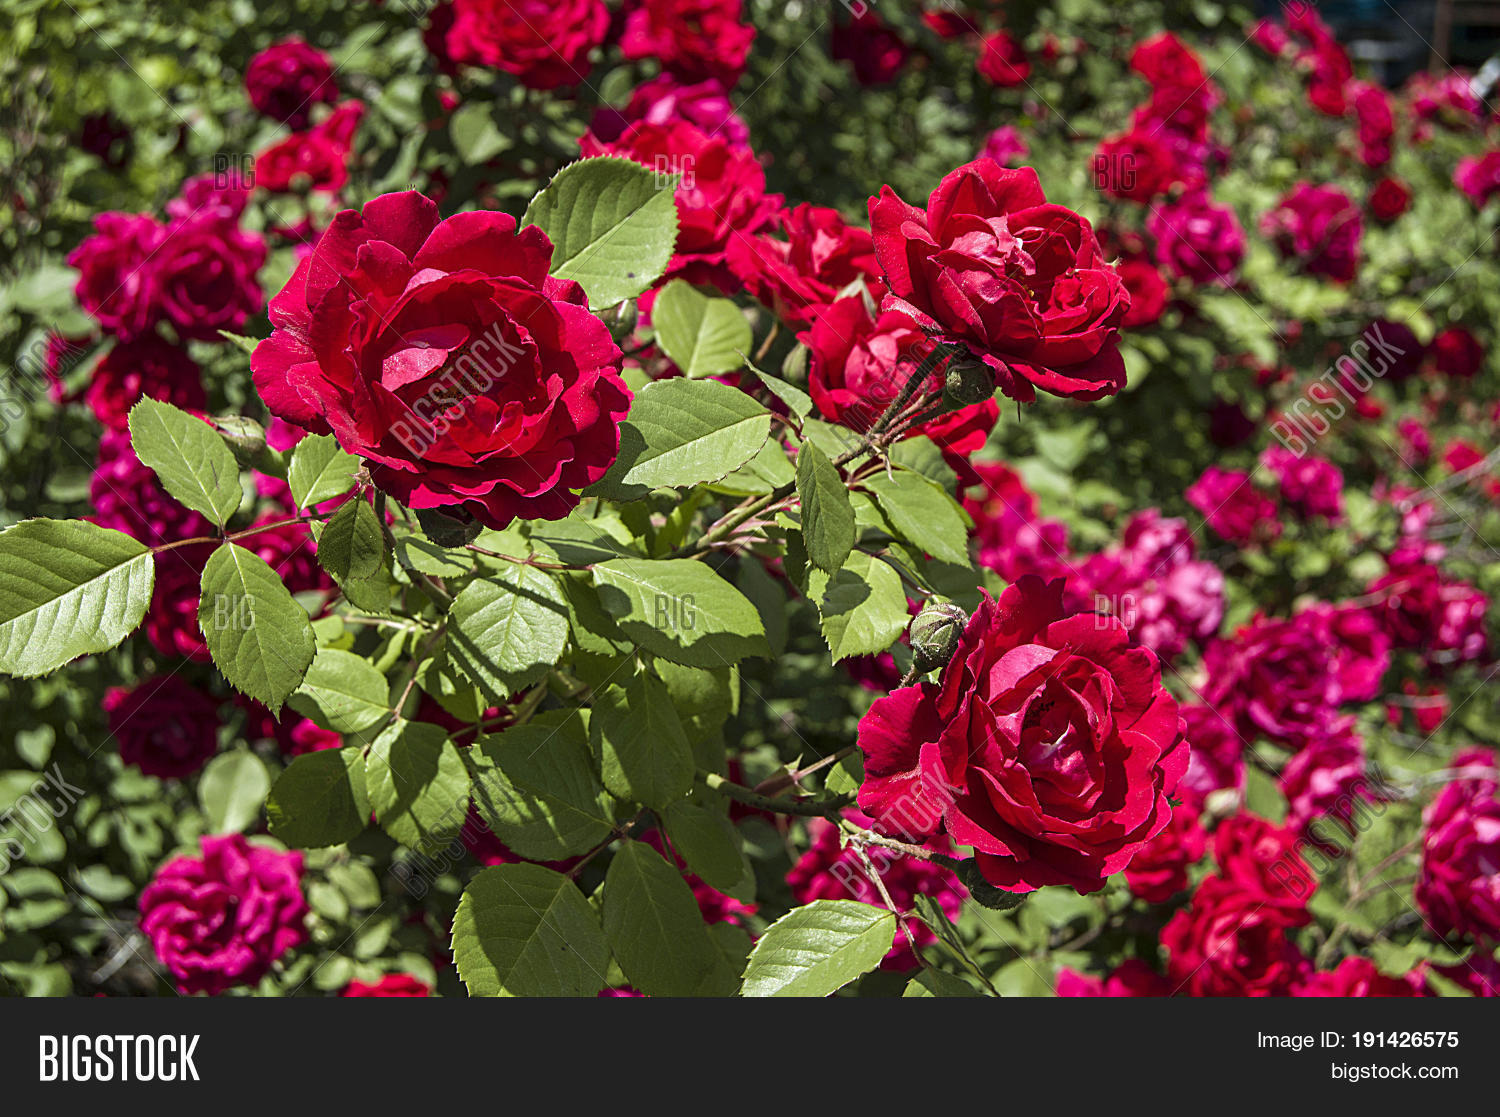 Rose Tree Most Image Photo Free Trial Bigstock